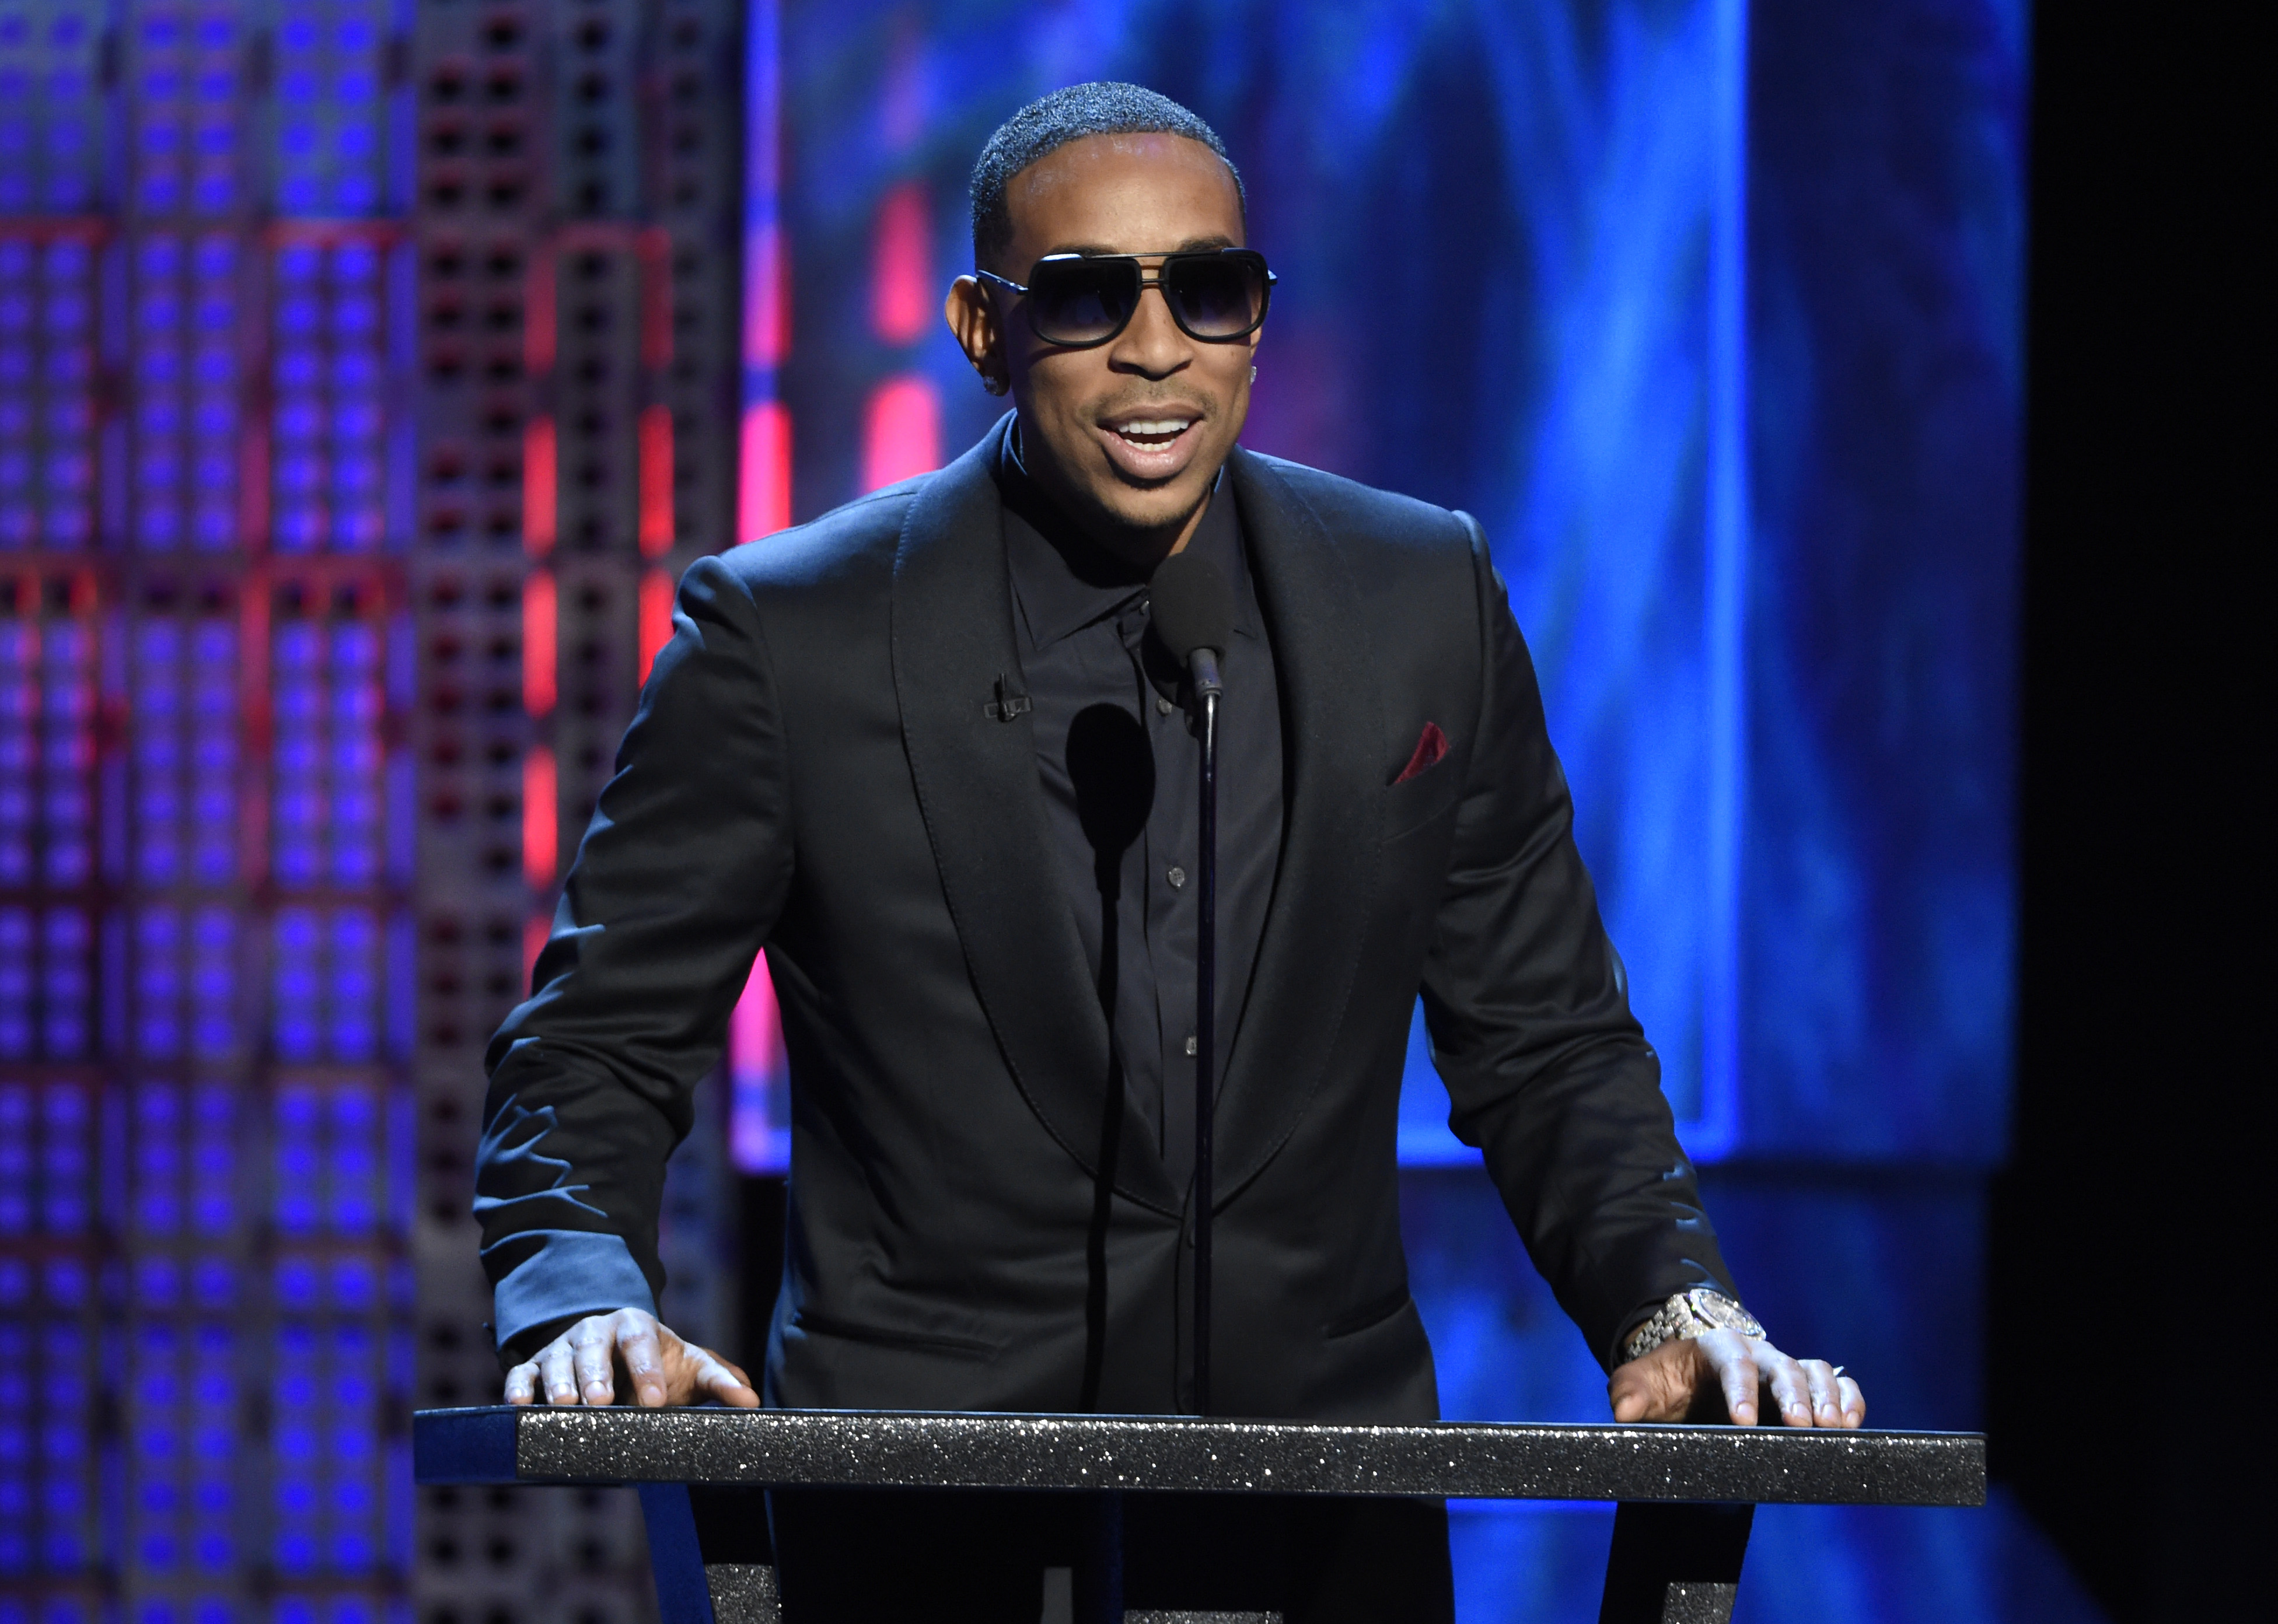 Ludacris, Chrissy Teigen to host 2015 Billboard Music Awards